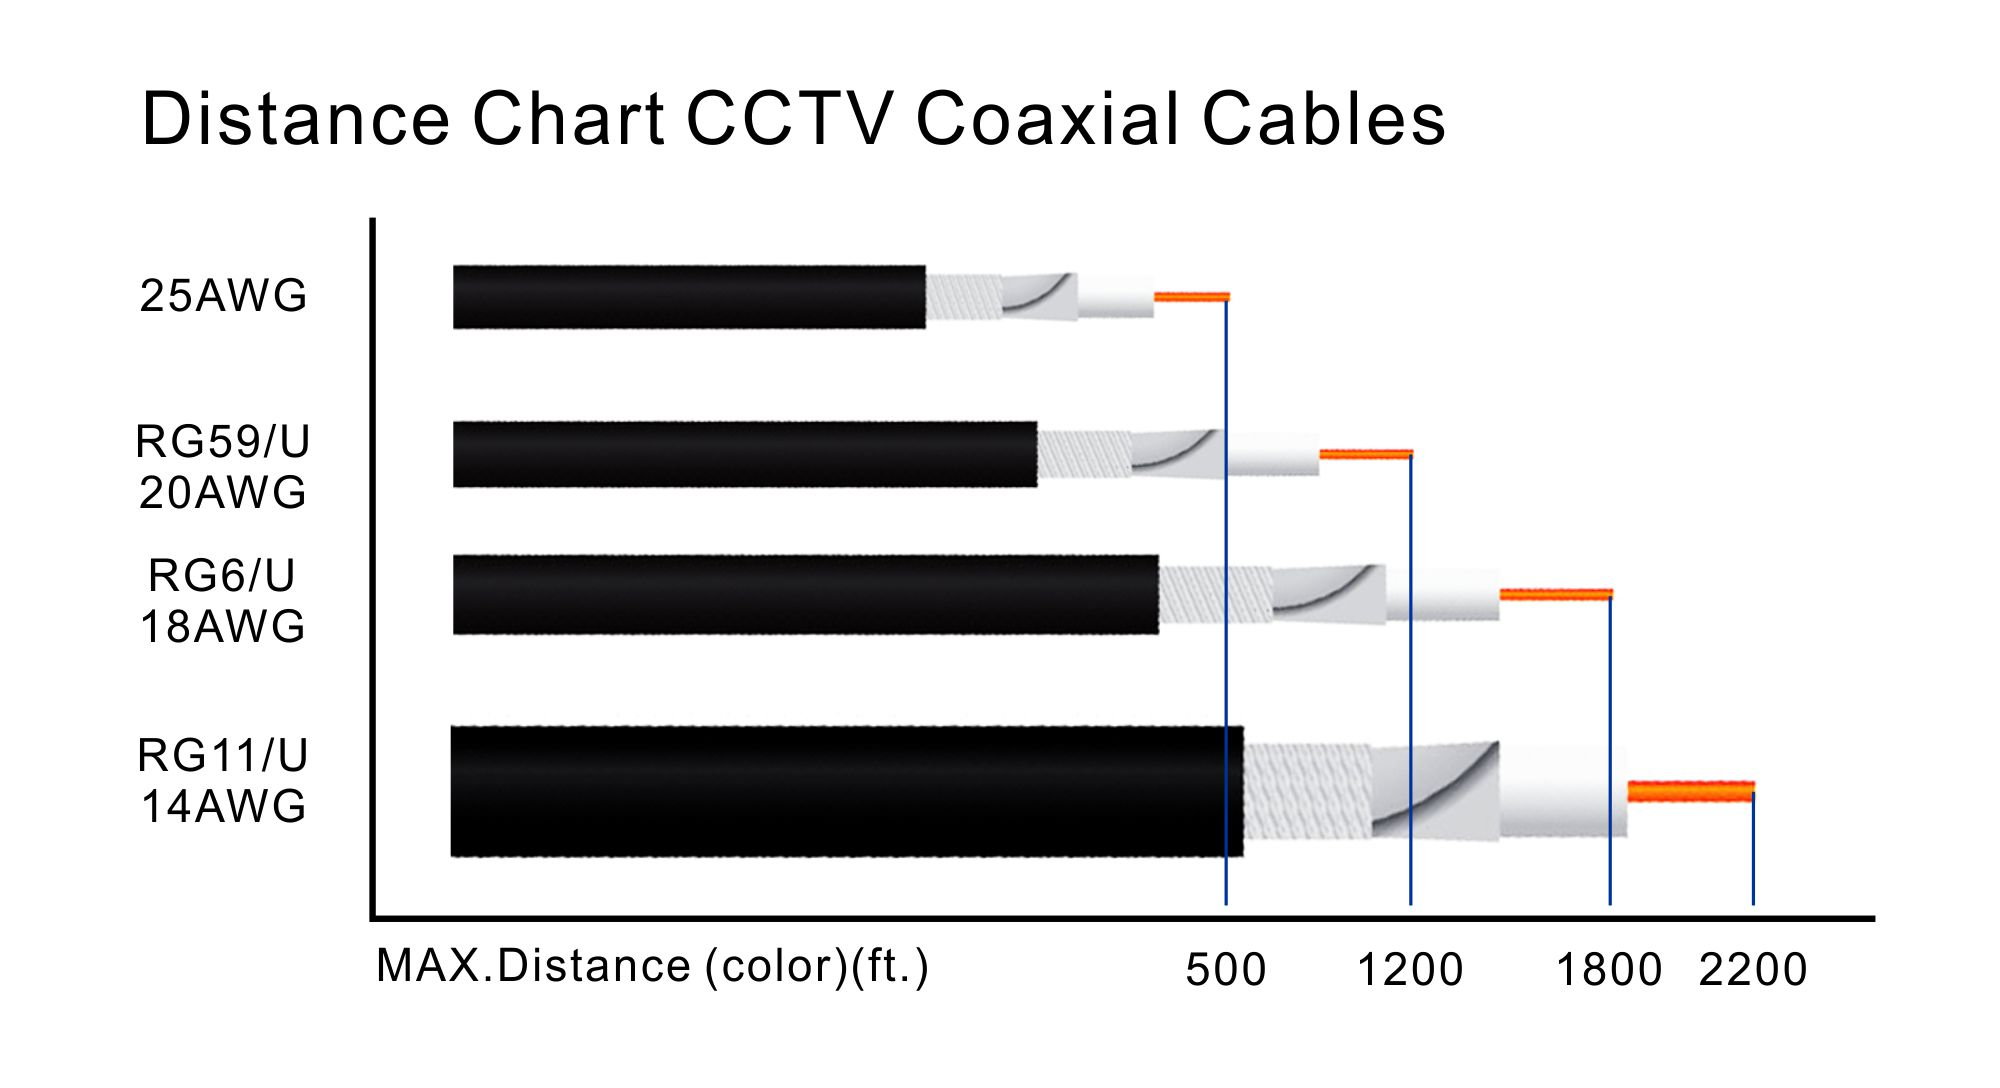 Distance Chart CCTV Coaxial Cables